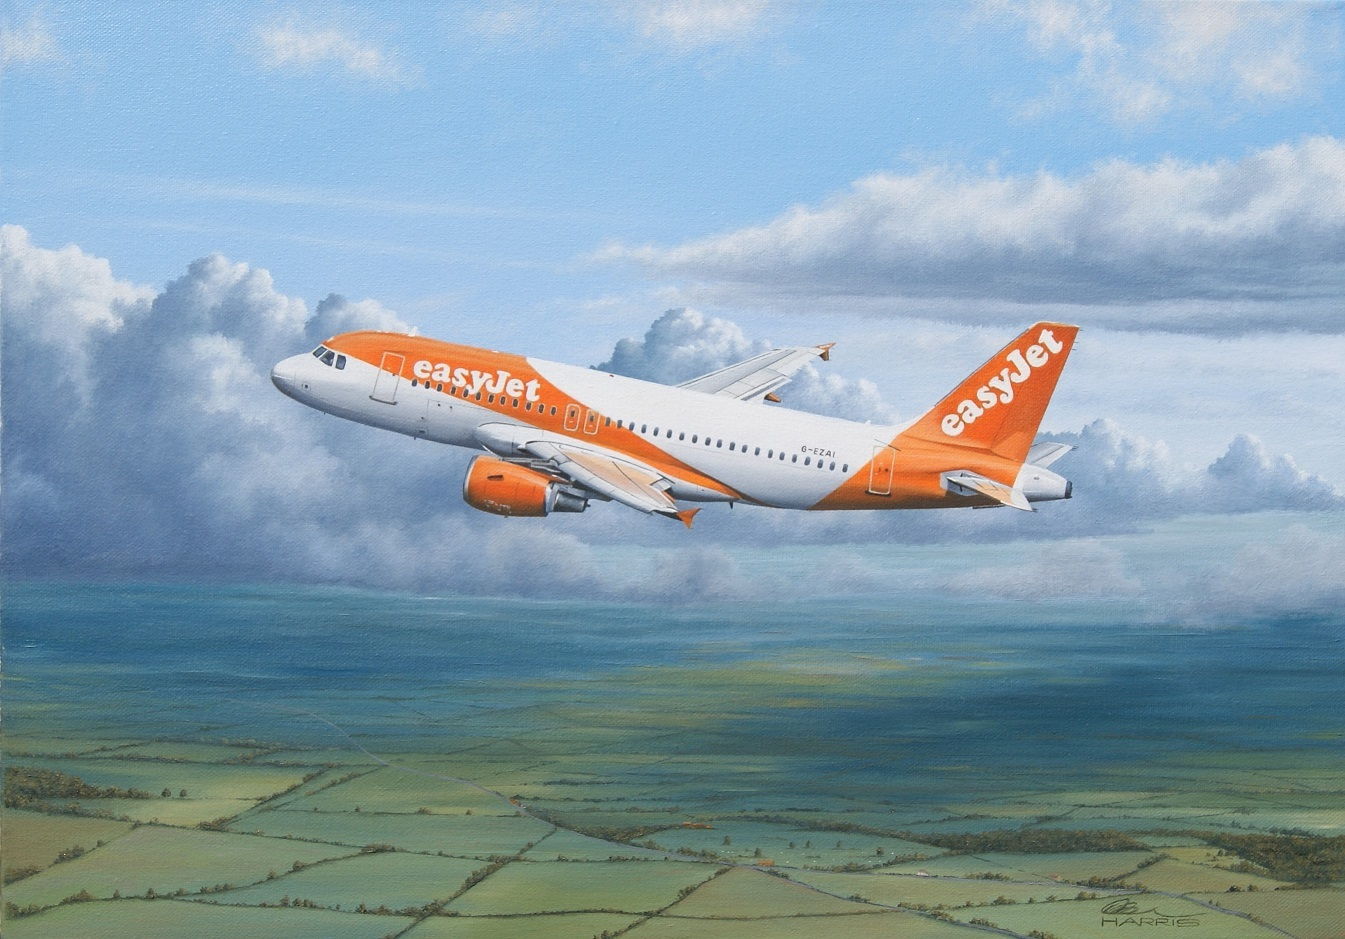 EasyJet_G-EZAI_Completed_LR